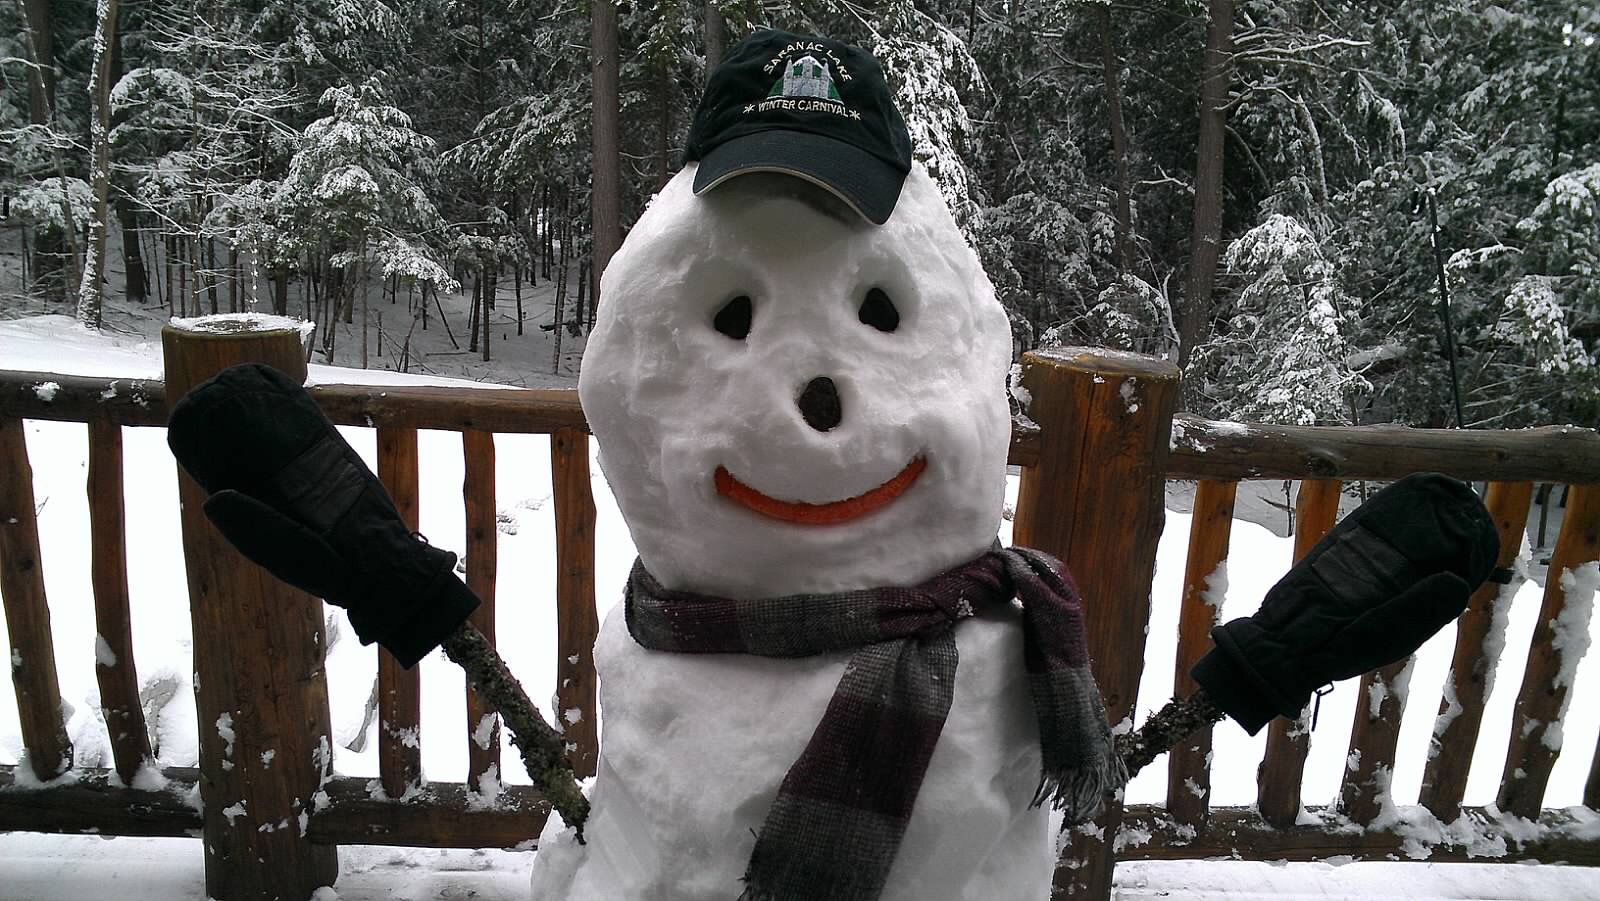 Snowman by Sandy Day